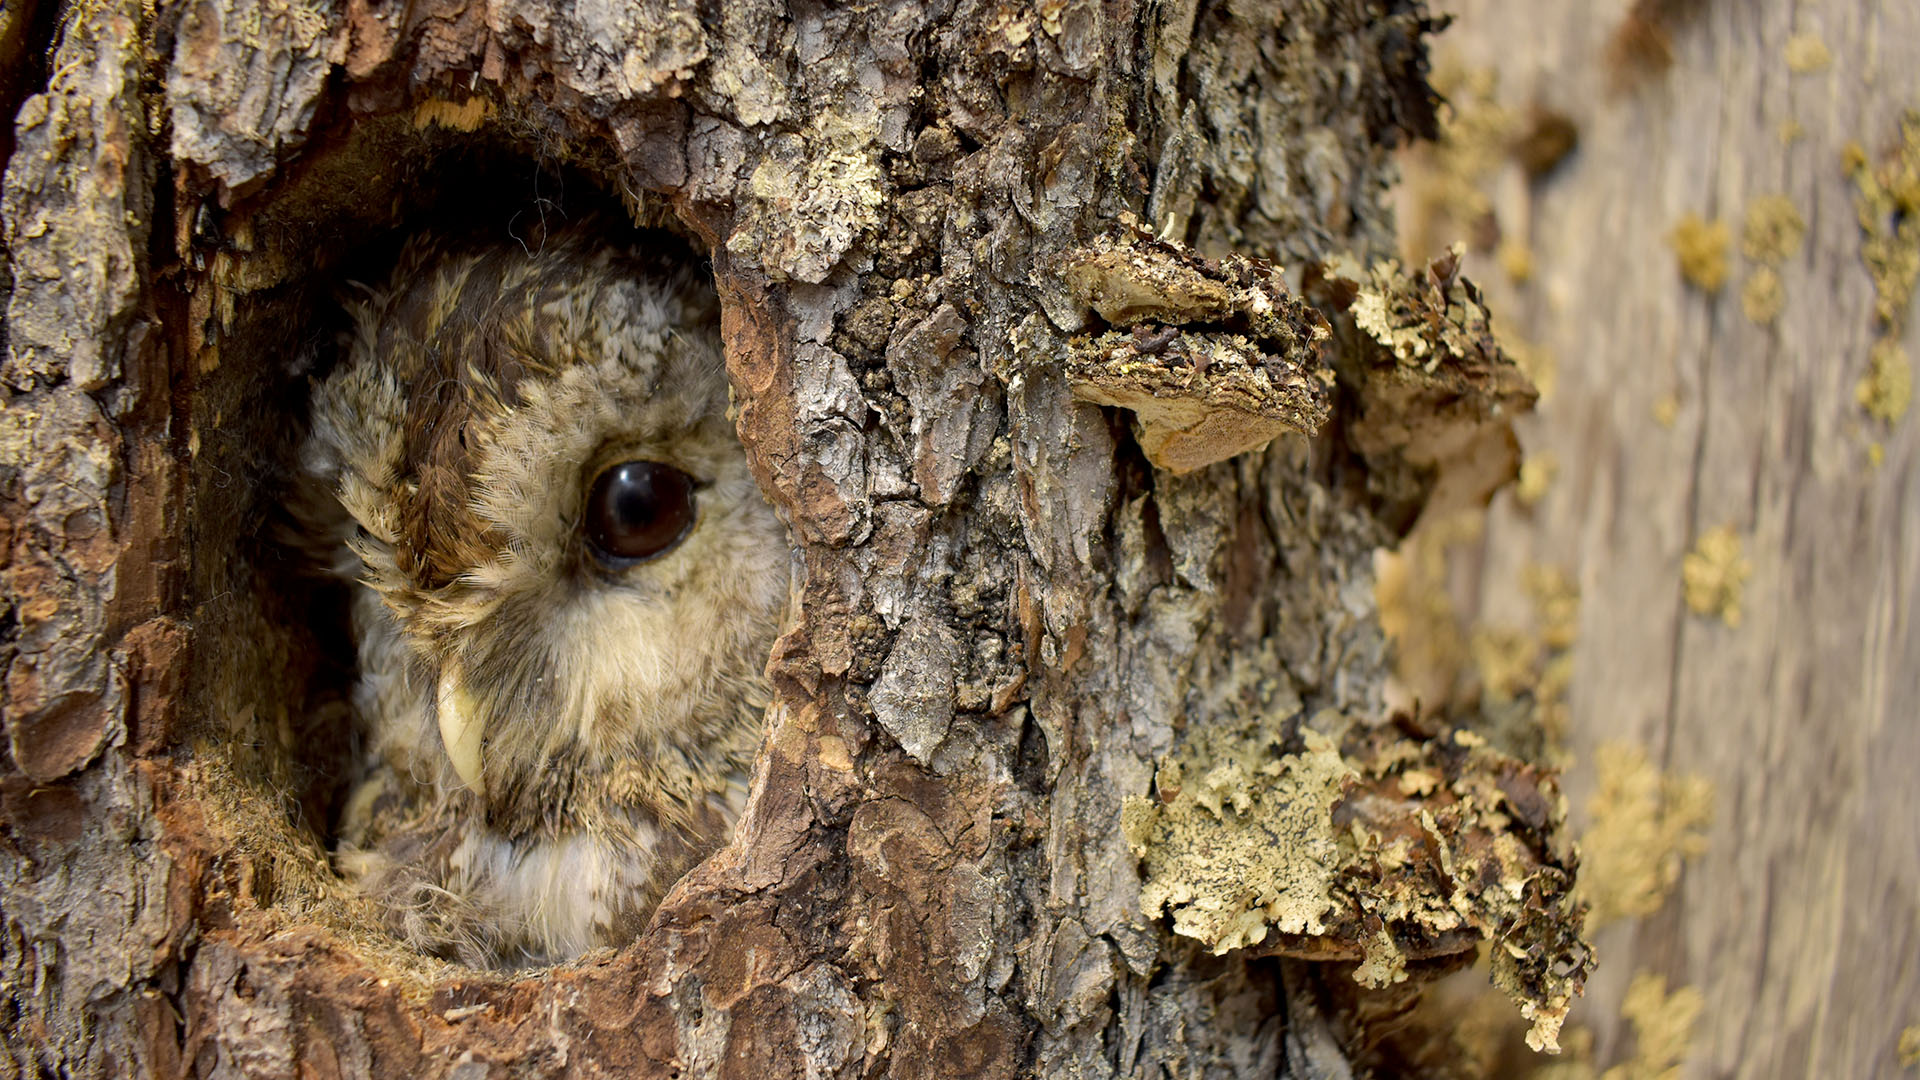 Tawny owl peeking from it´s tree hollow in Veikko Salkio´s Natural History Collection.